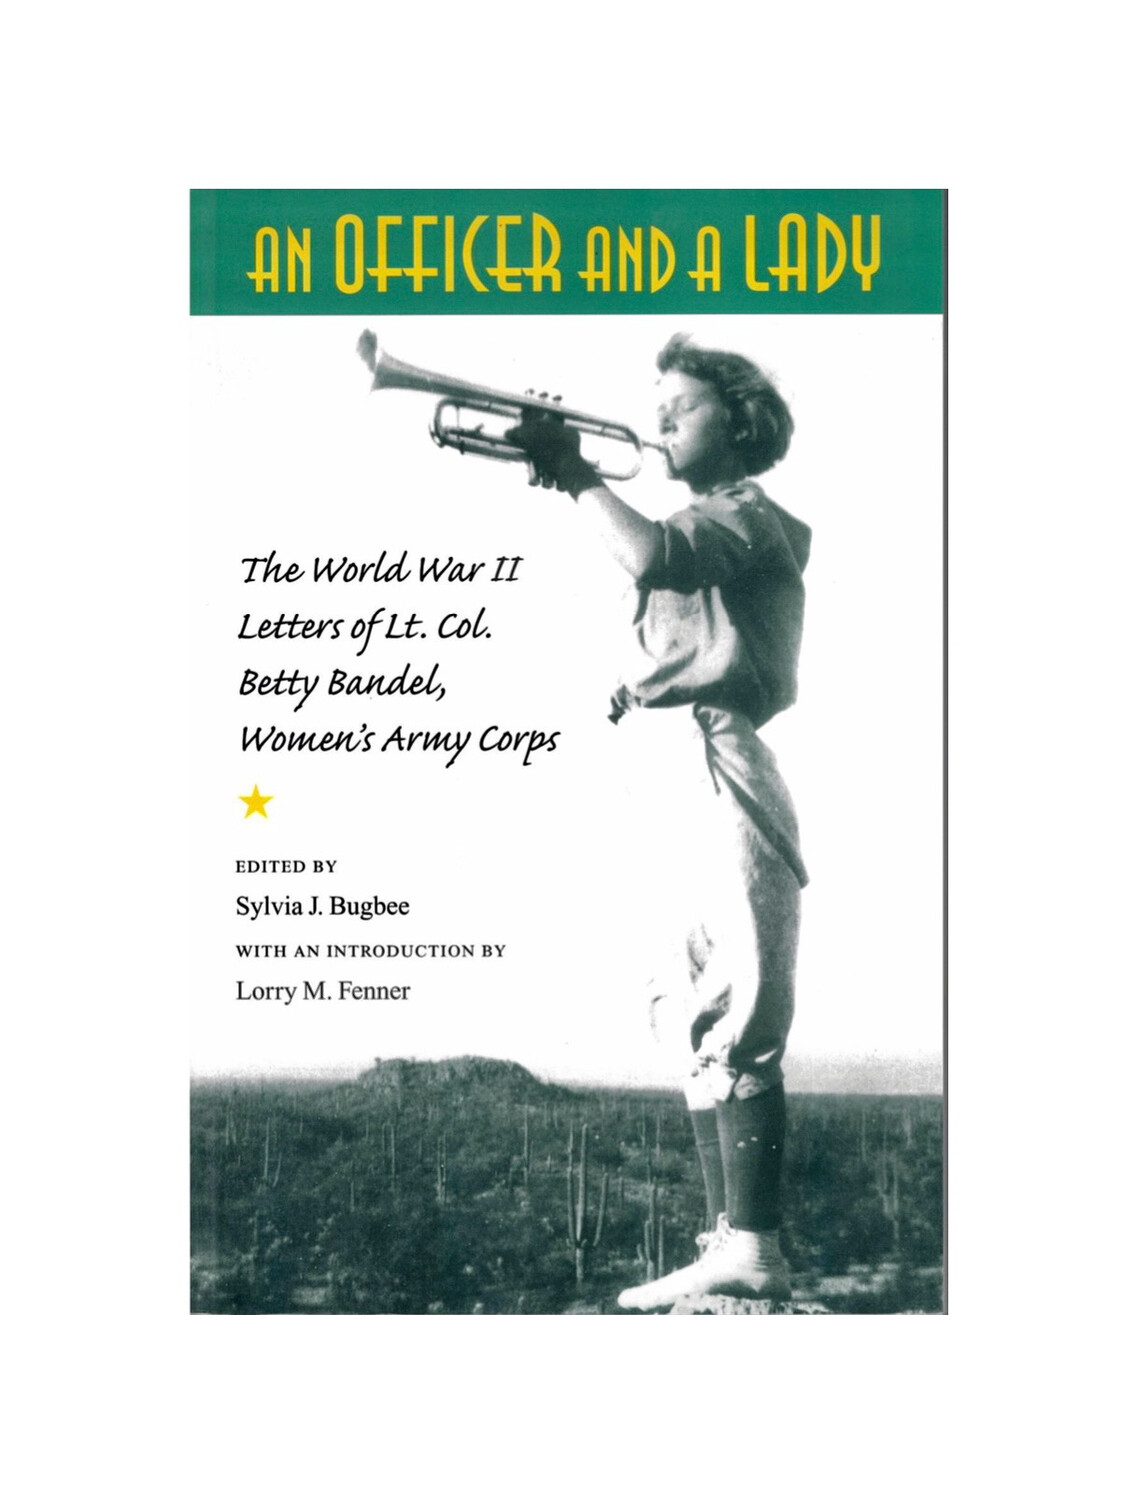 An Officer & A Lady by Betty Bandel